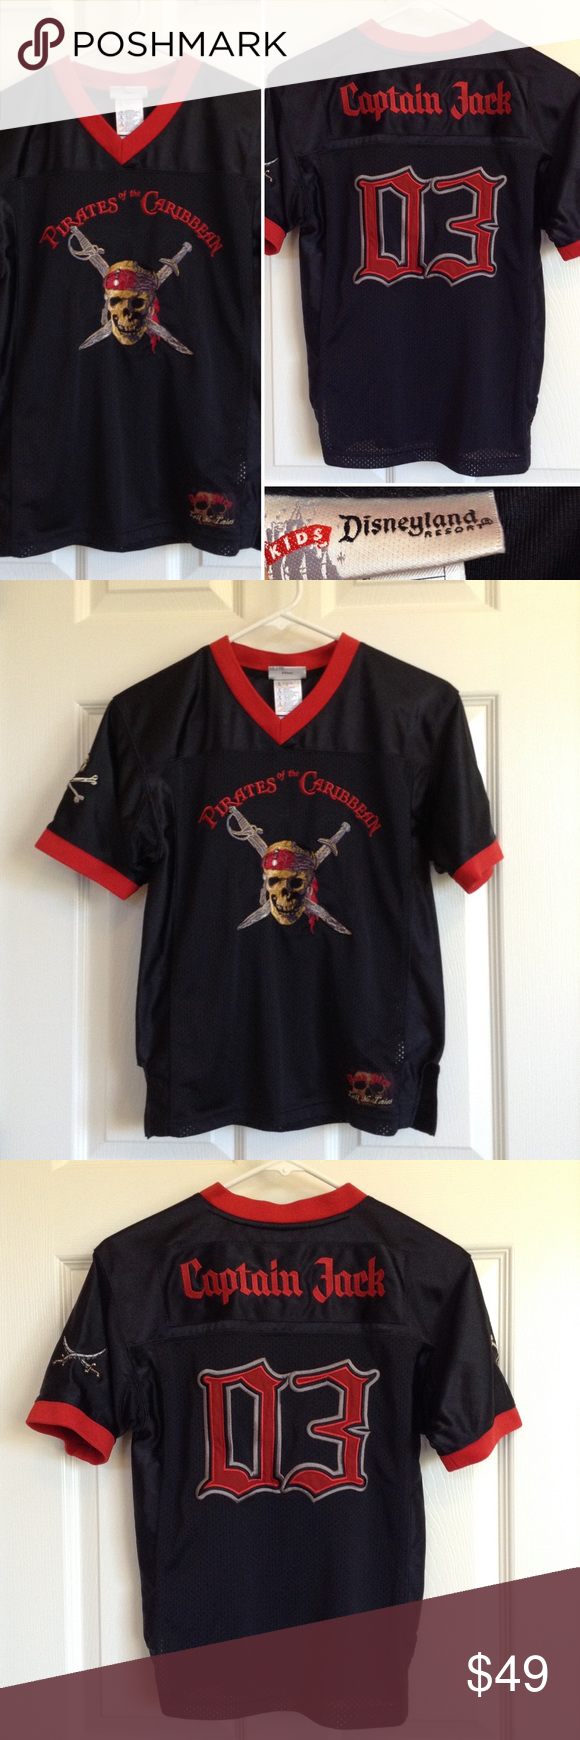 Captain Jack Sparrow Jersey From Disneyland Pirates Of The Caribbean